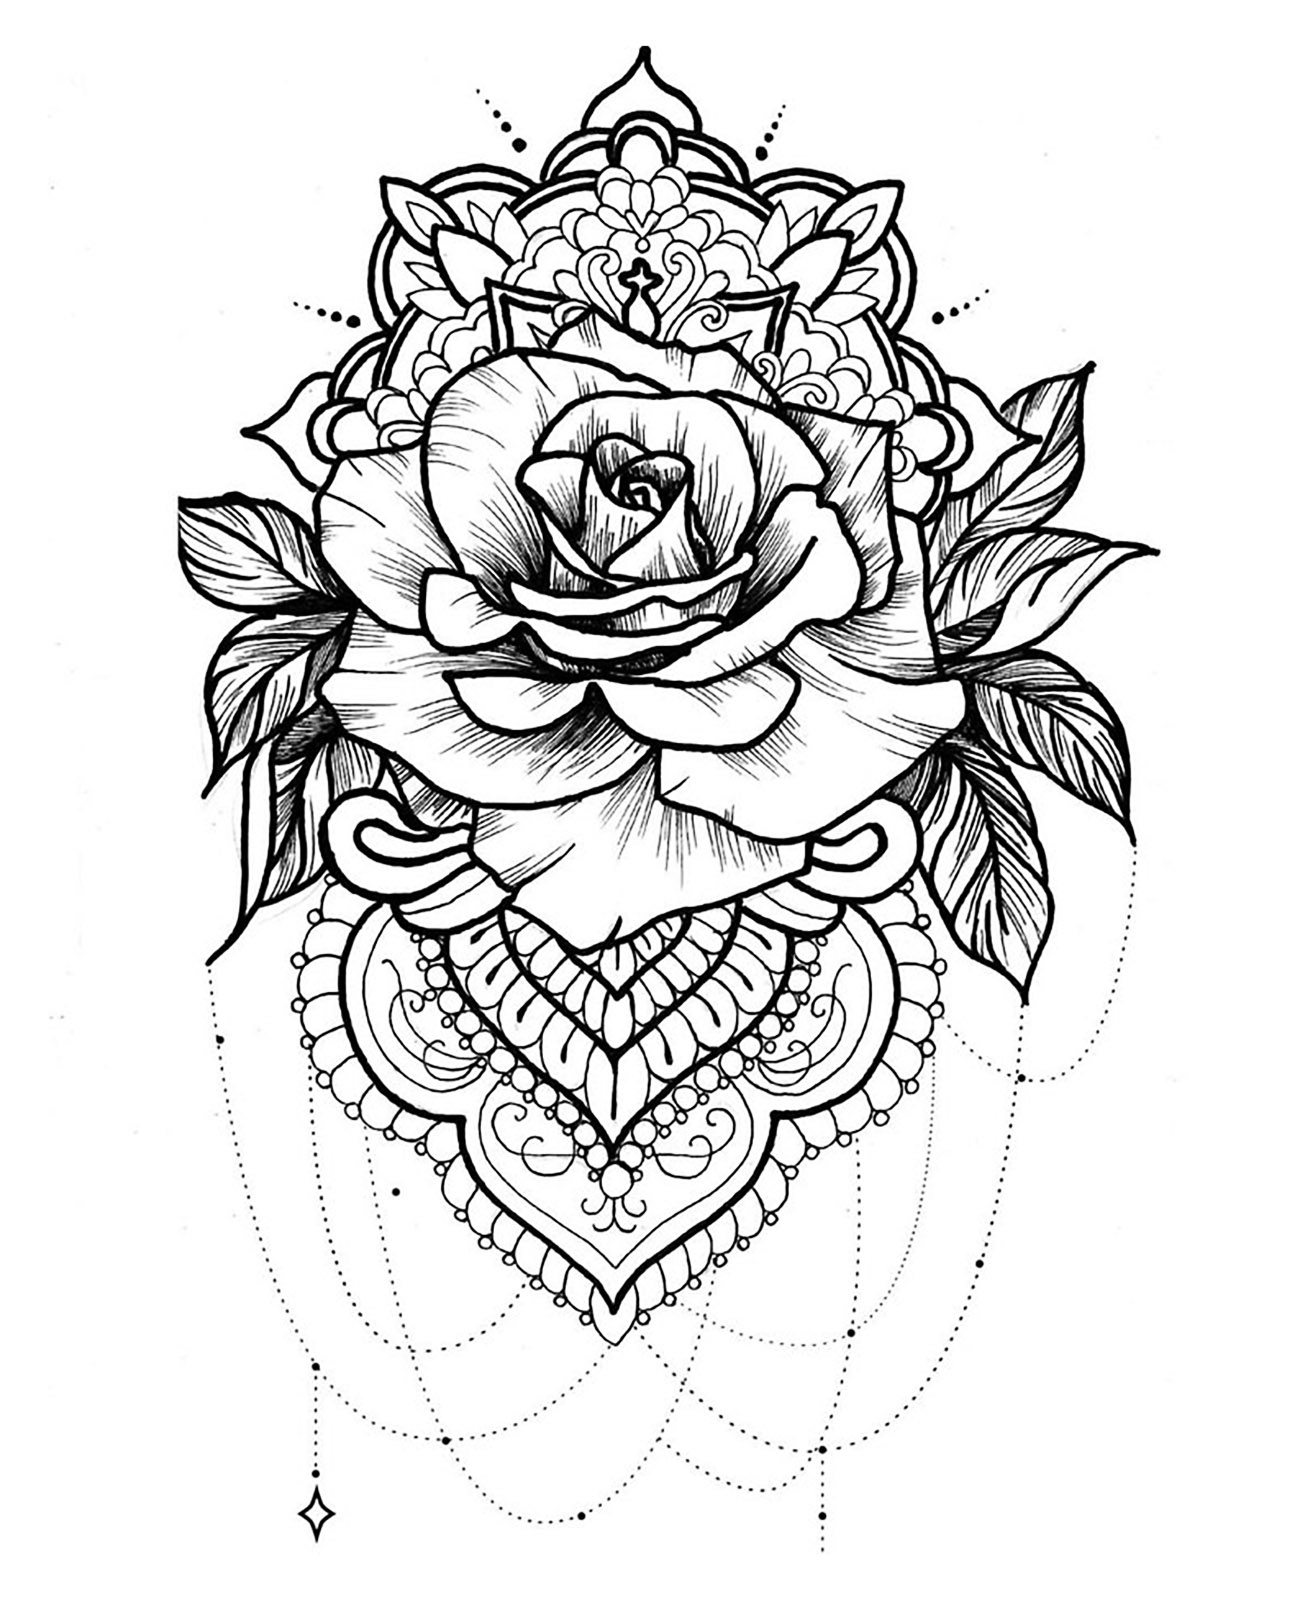 Coloring pages of roses and butterflies - A Mandala Compose Of A Magnificent Rose